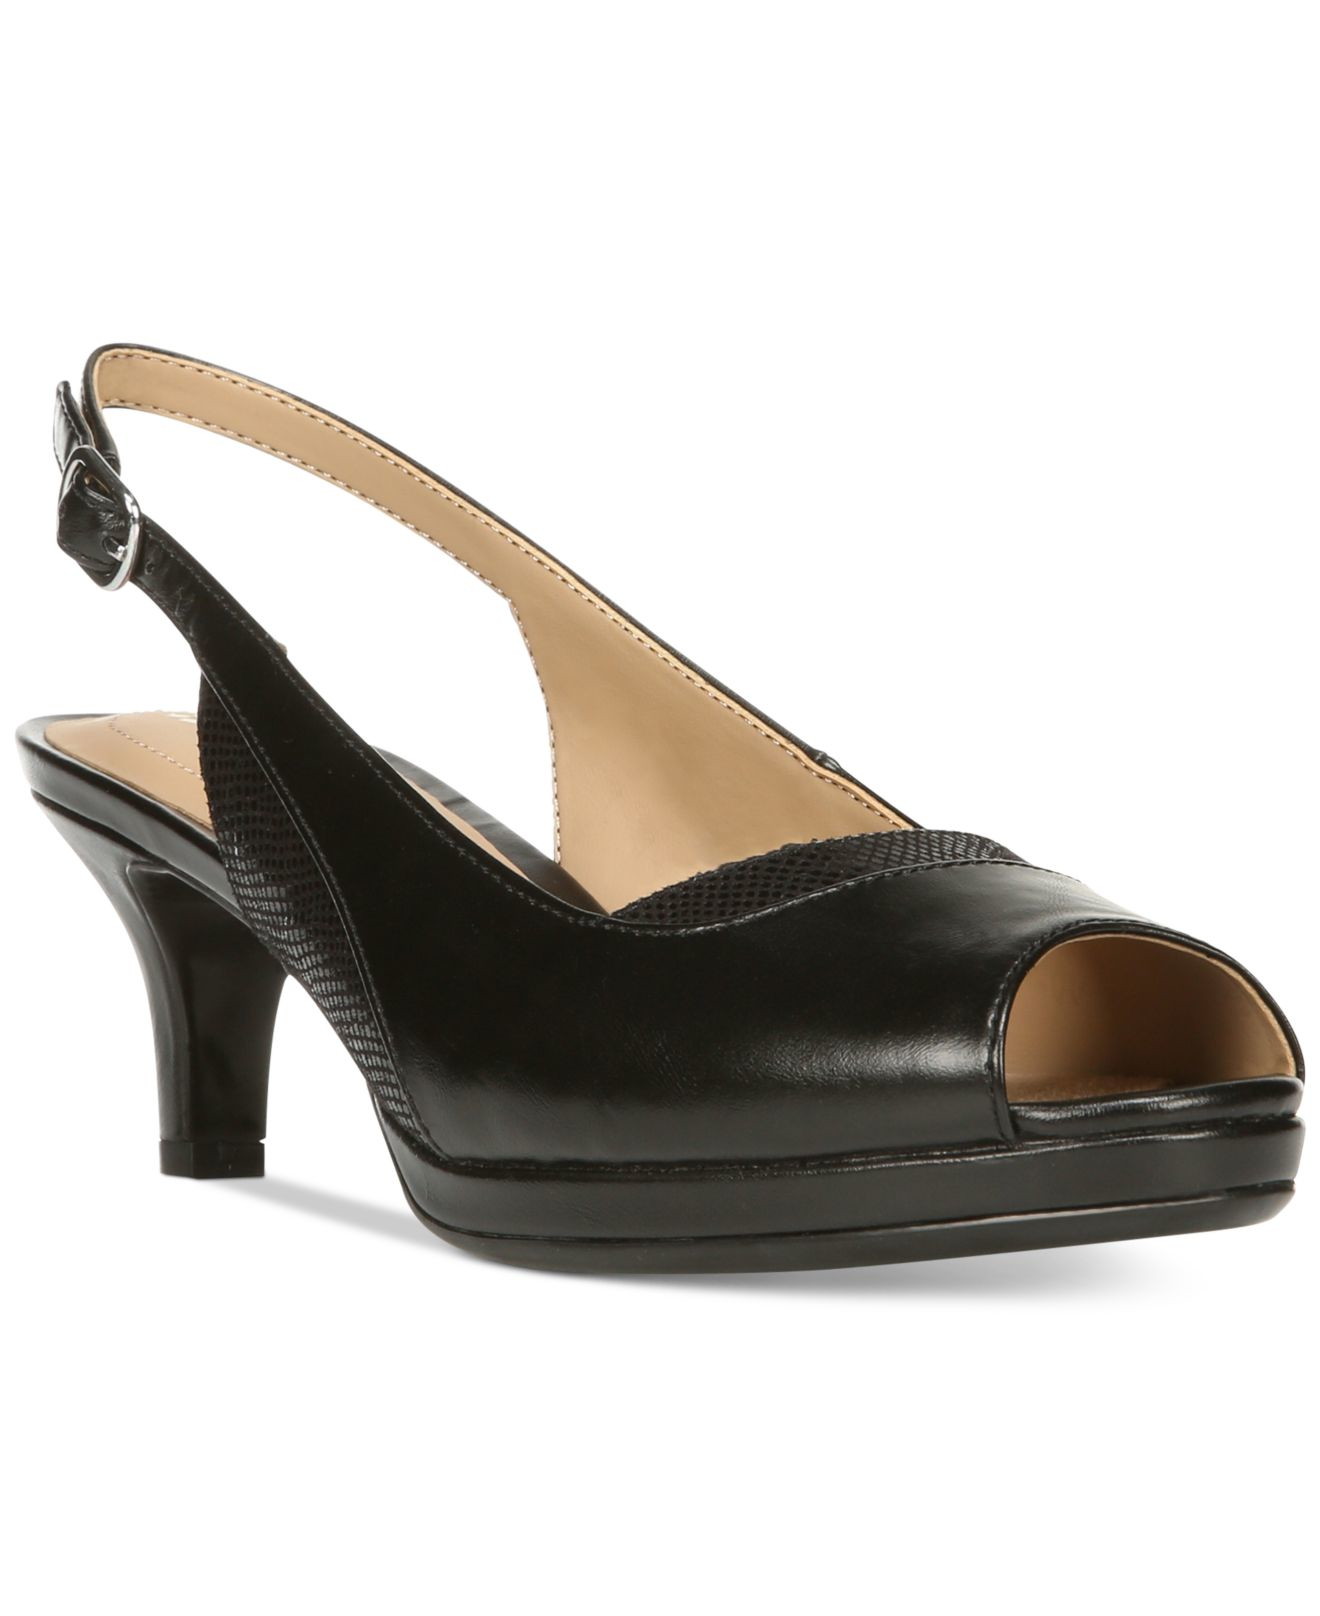 Lyst - Naturalizer Highly Kitten Heel Peep-toe Sandals in Black